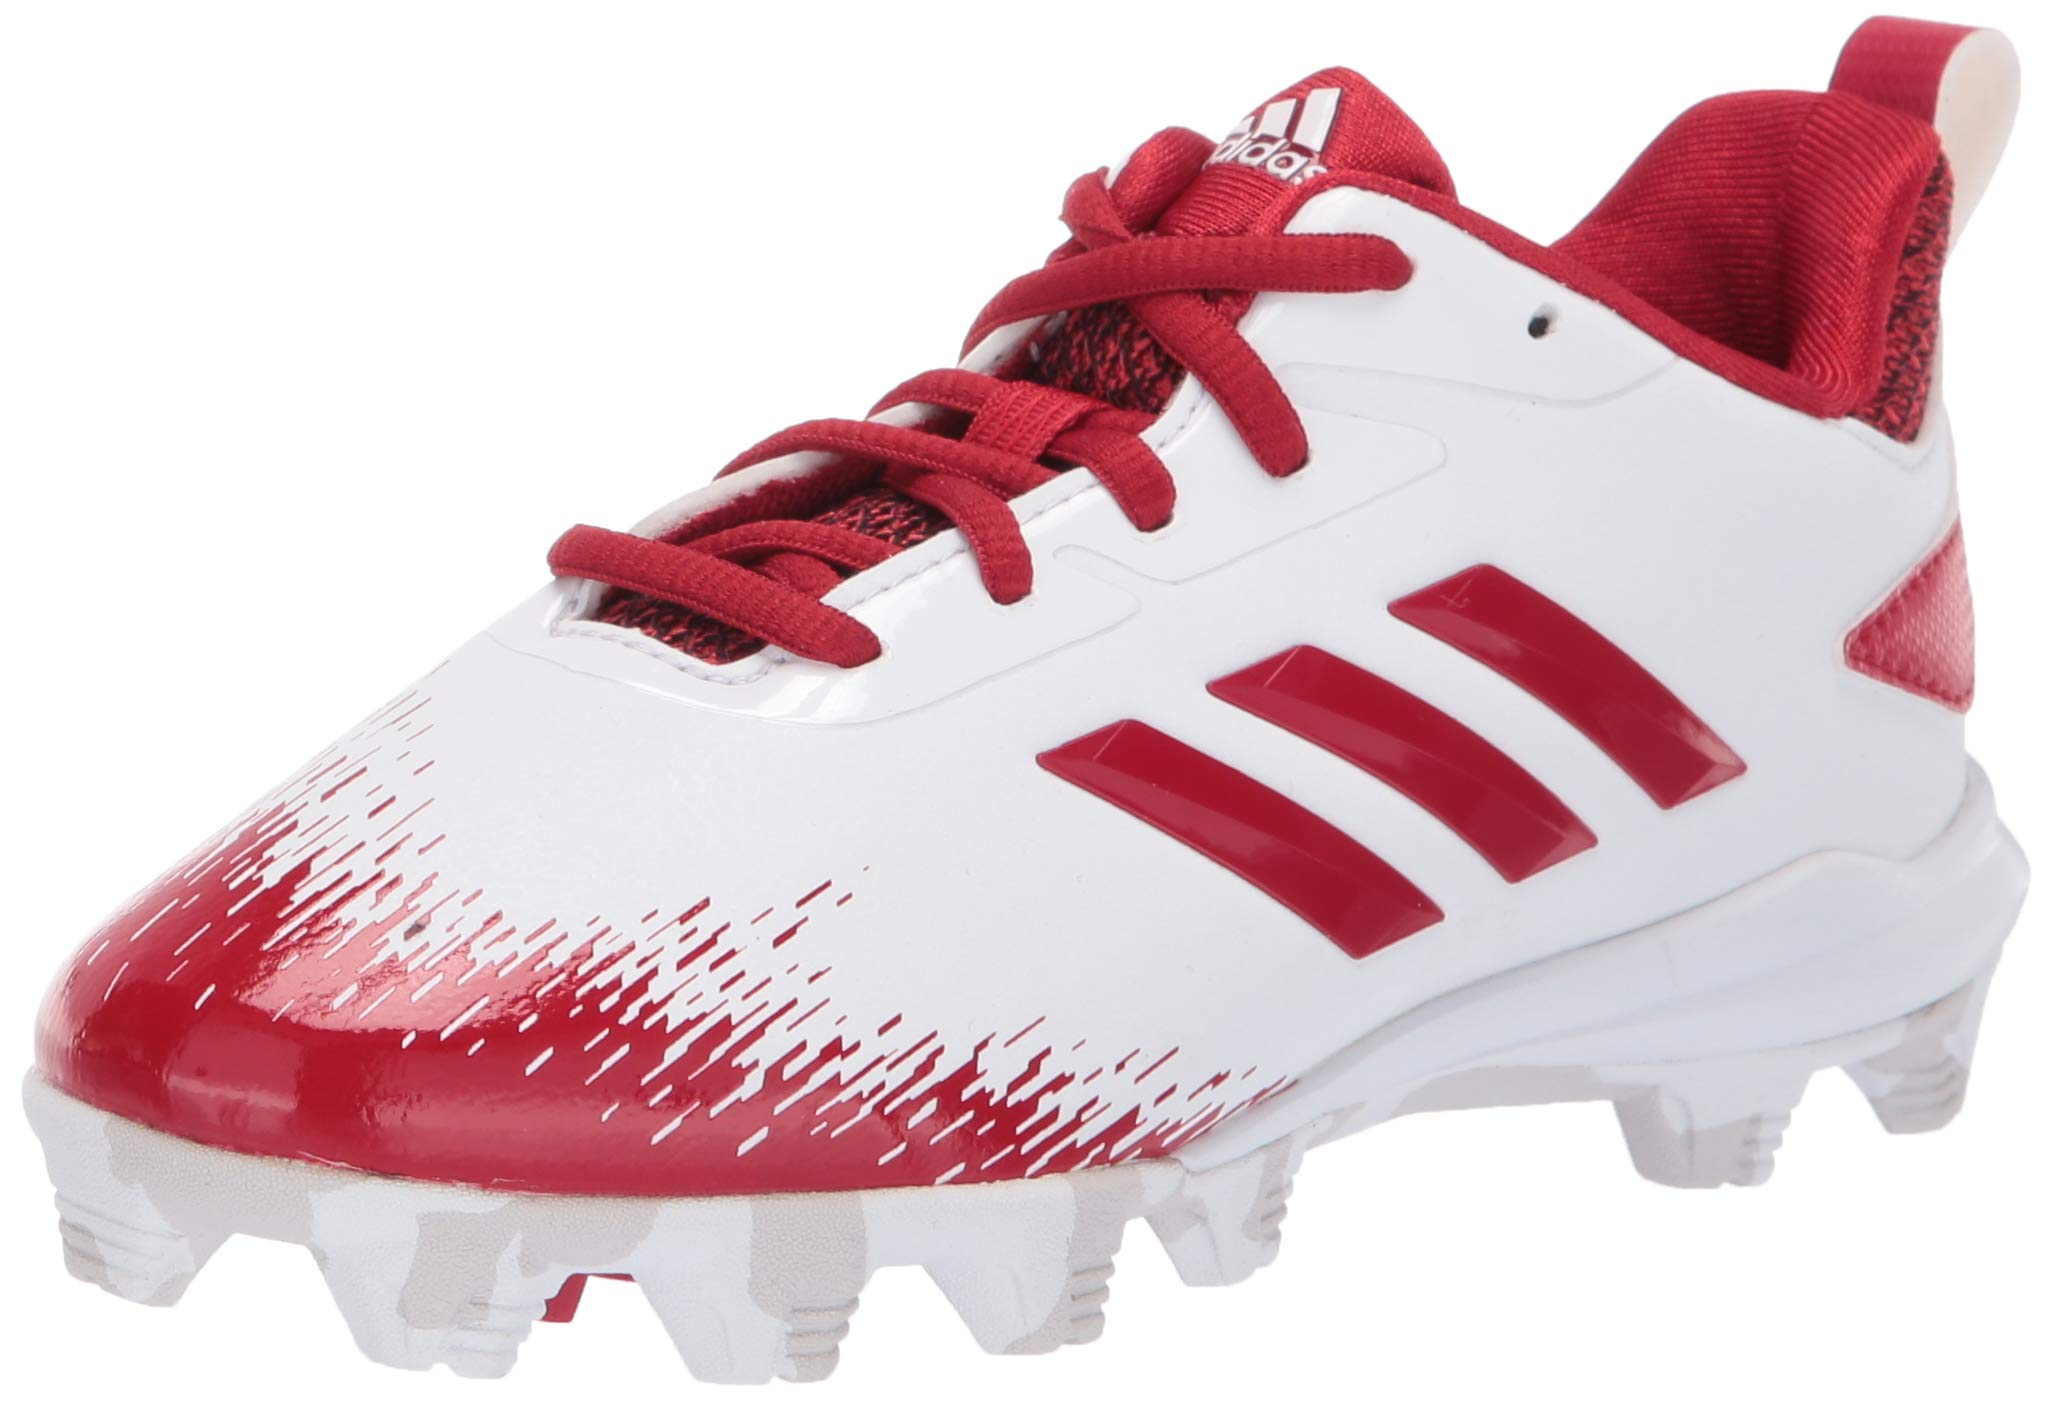 adidas Unisex Adizero Afterburner V Baseball Shoe, White/Power red/Grey, 1.5 M US Little Kid by adidas